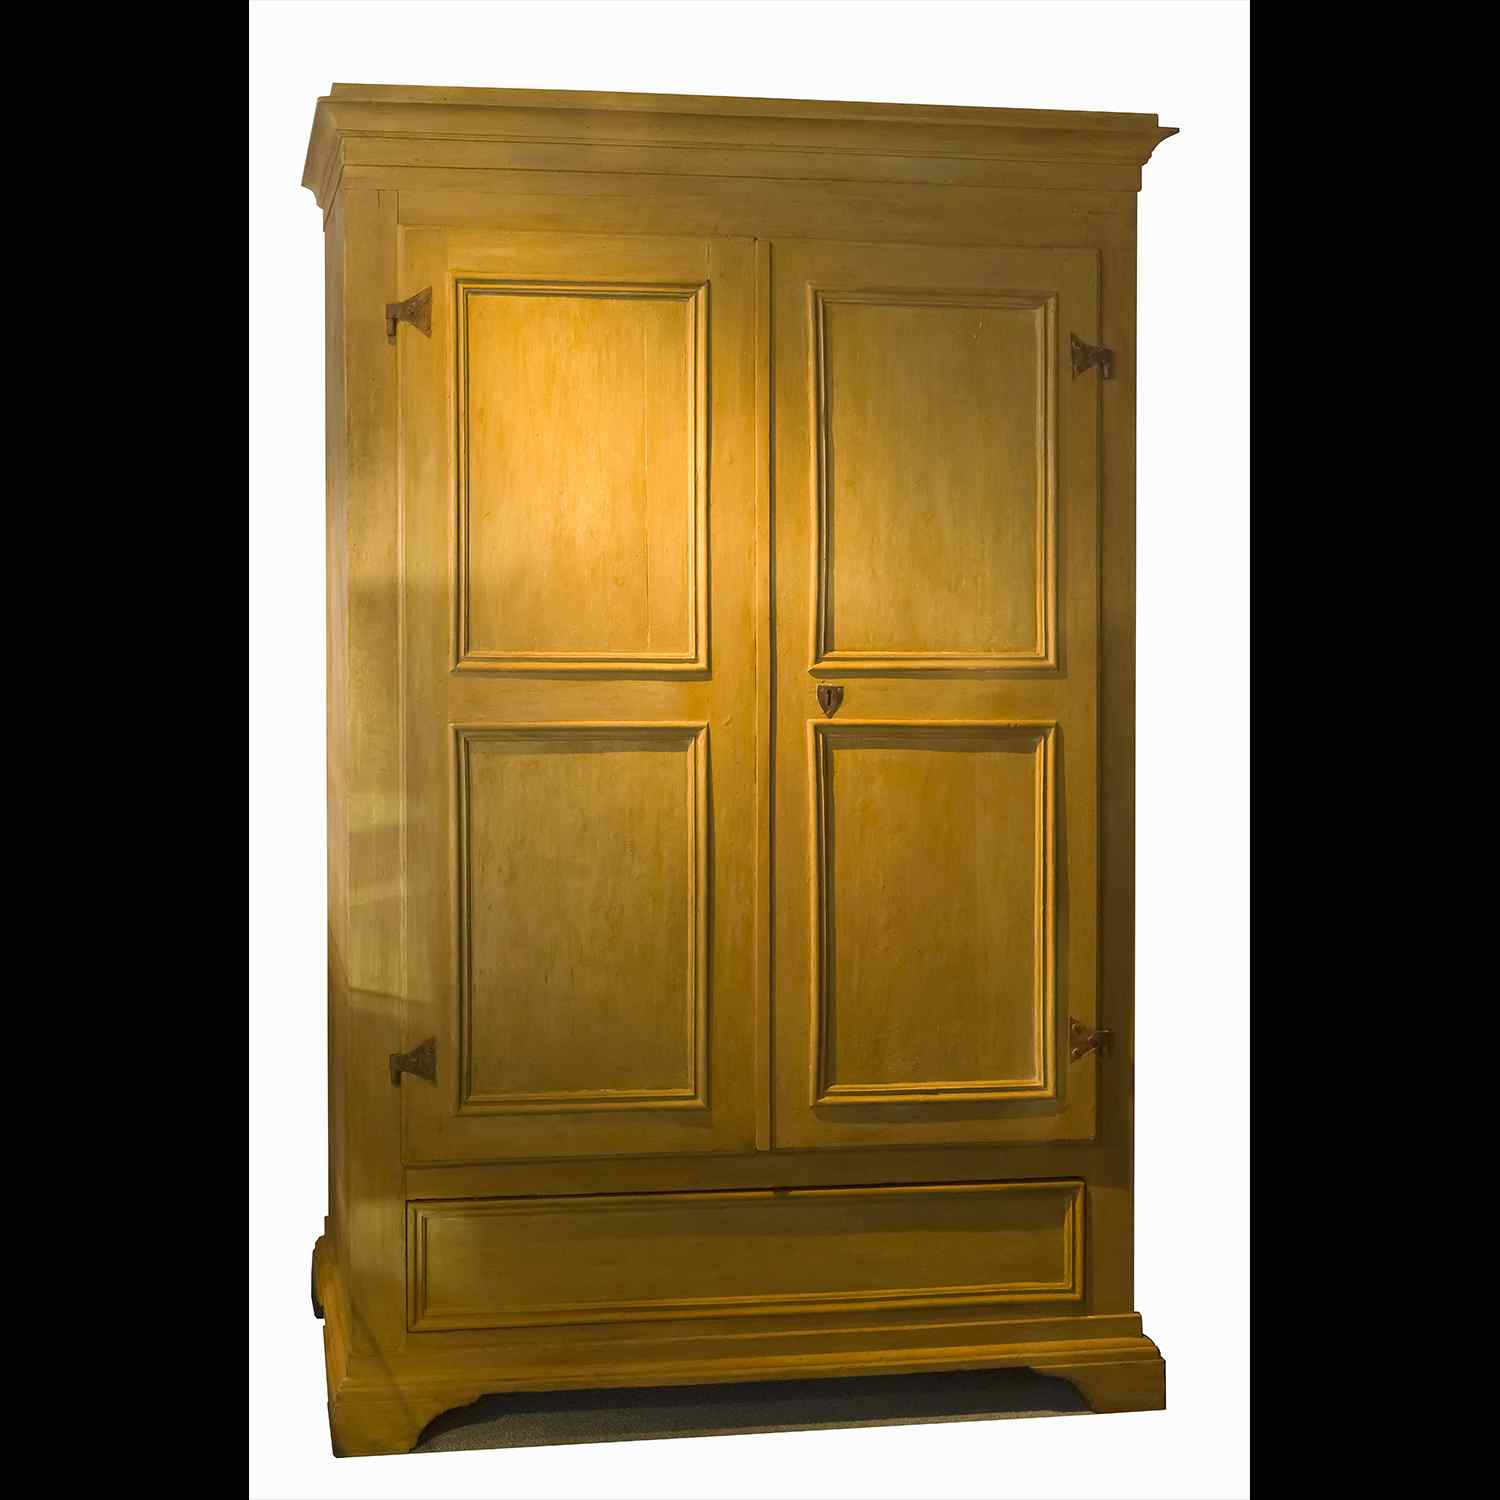 Antique Tuscan lacquered wardrobe